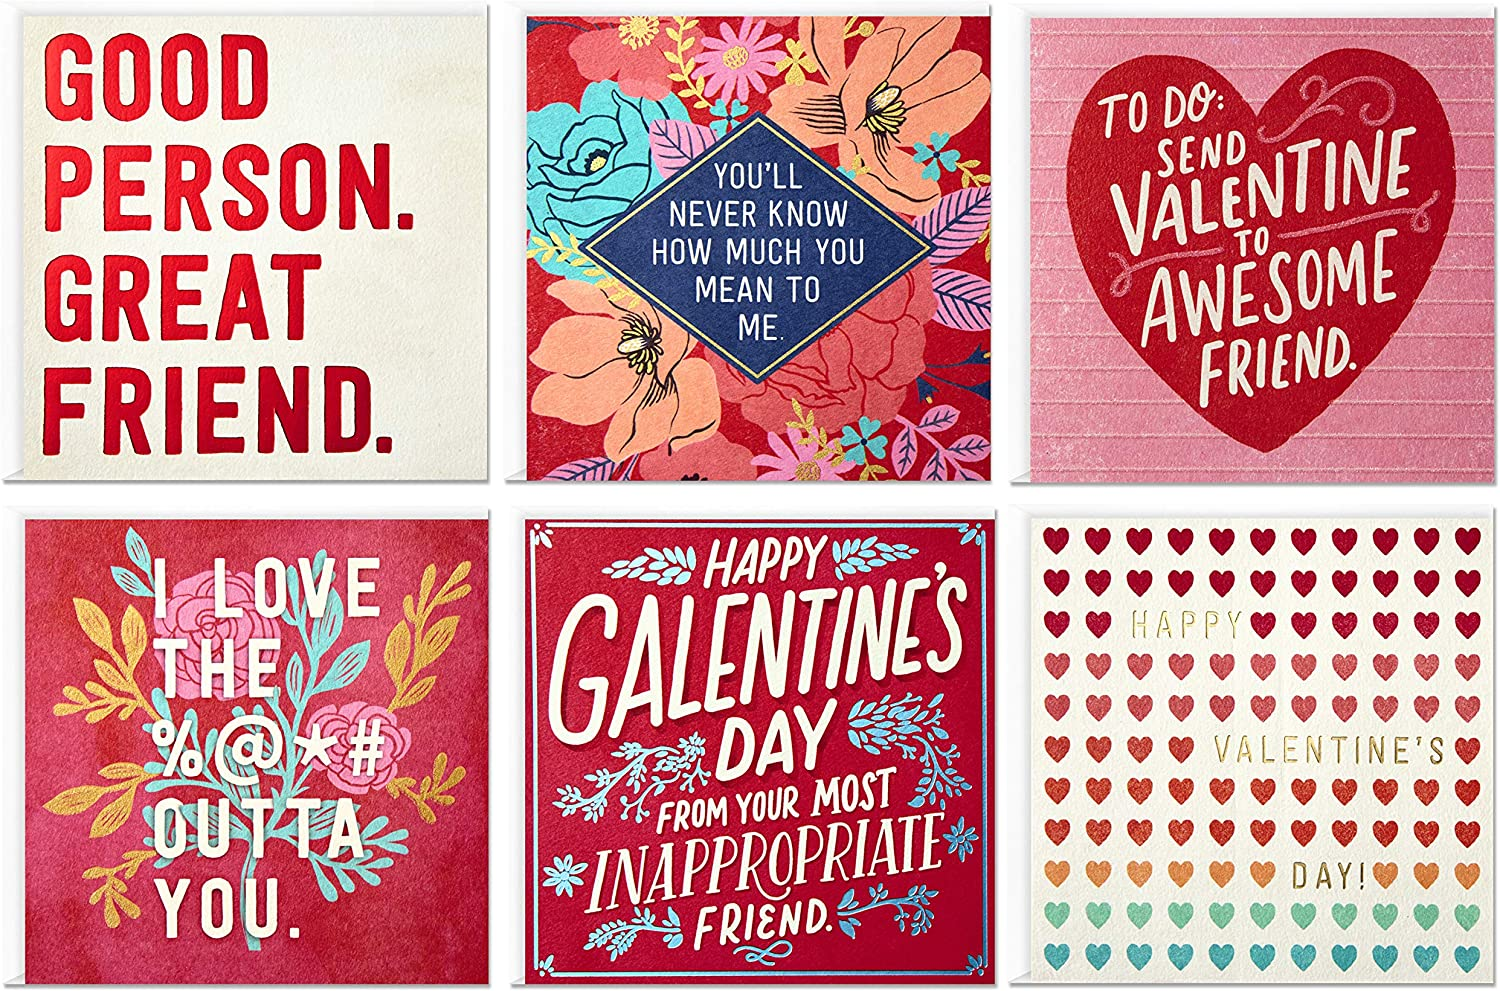 Love You Card Just Because Romantic Greeting for BF GF Funny Office Valentines Card Happy Anniversary Love Card Cute Dwight Love Card